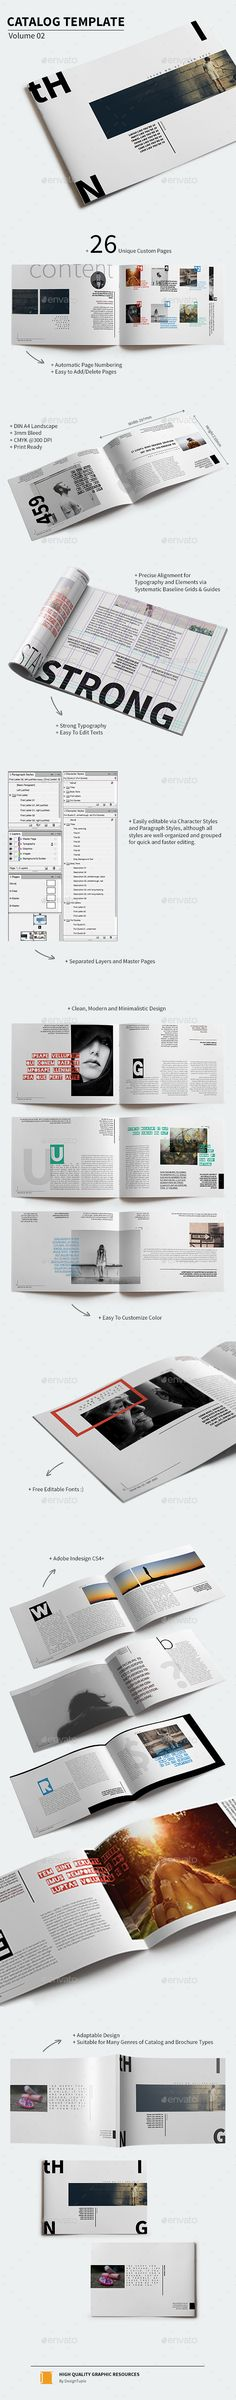 Catalog Brochure Template #design Download: http://graphicriver.net/item/catalog-template-volume-02/13114873?ref=ksioks